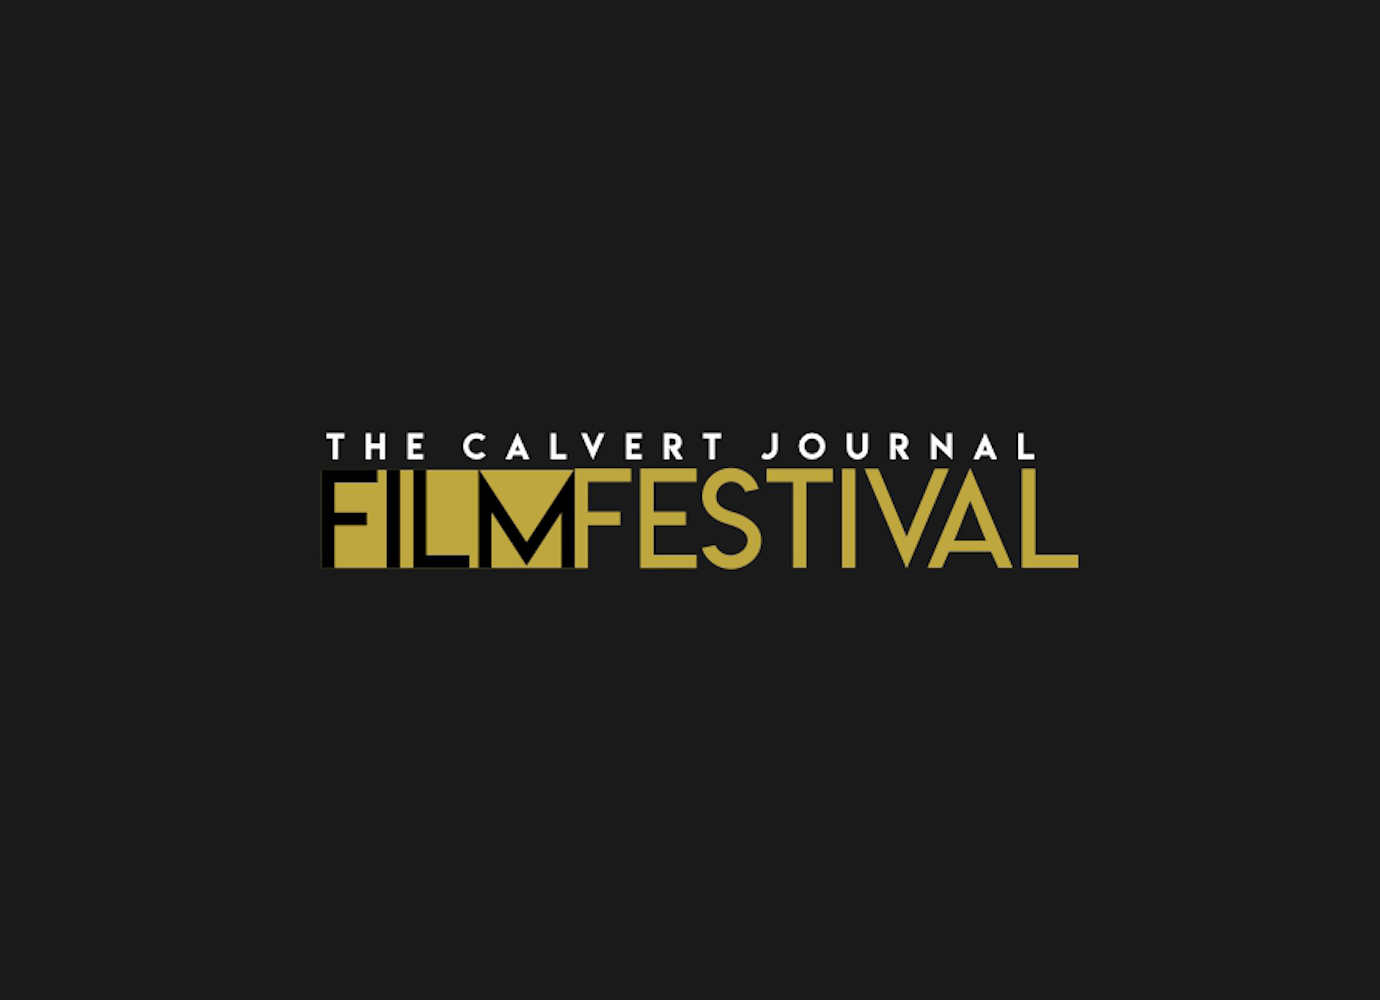 Submissions now open for The Calvert Journal Film Festival 2021